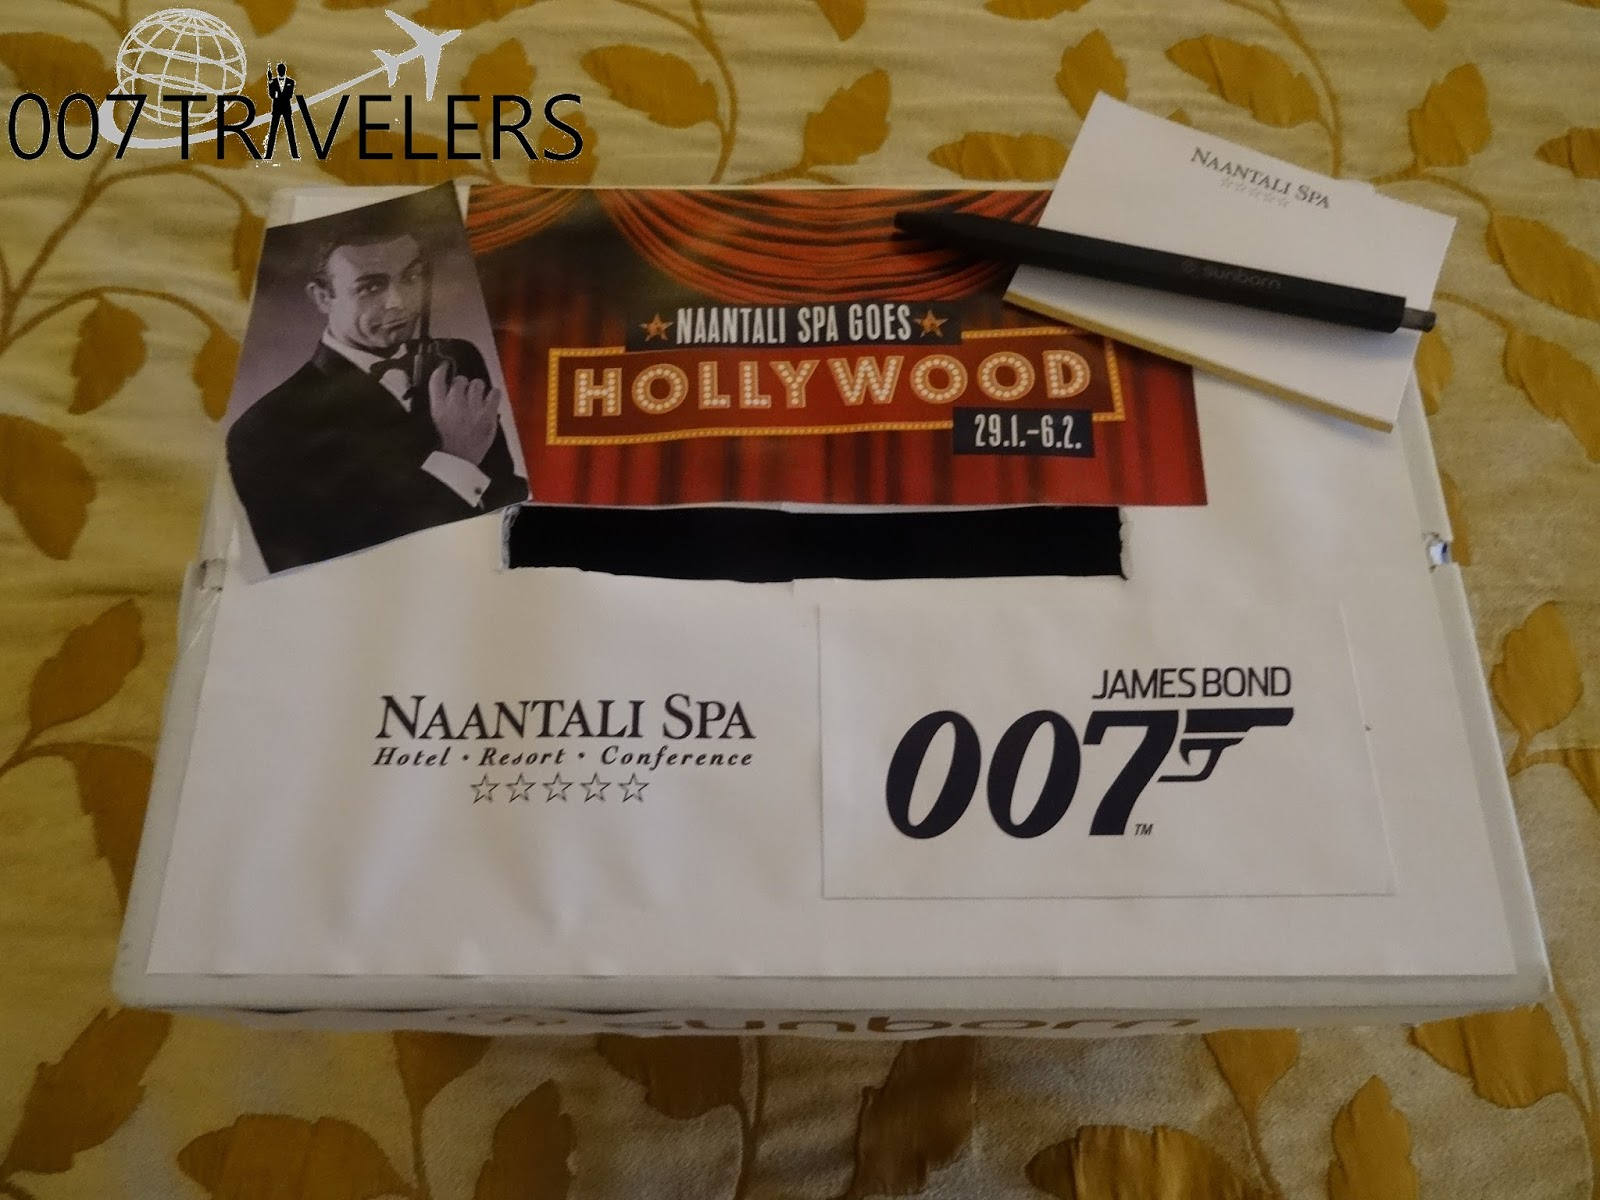 007 Travelers report: Naantali Spa Goes Hollywood: Bond day – 007 Blog